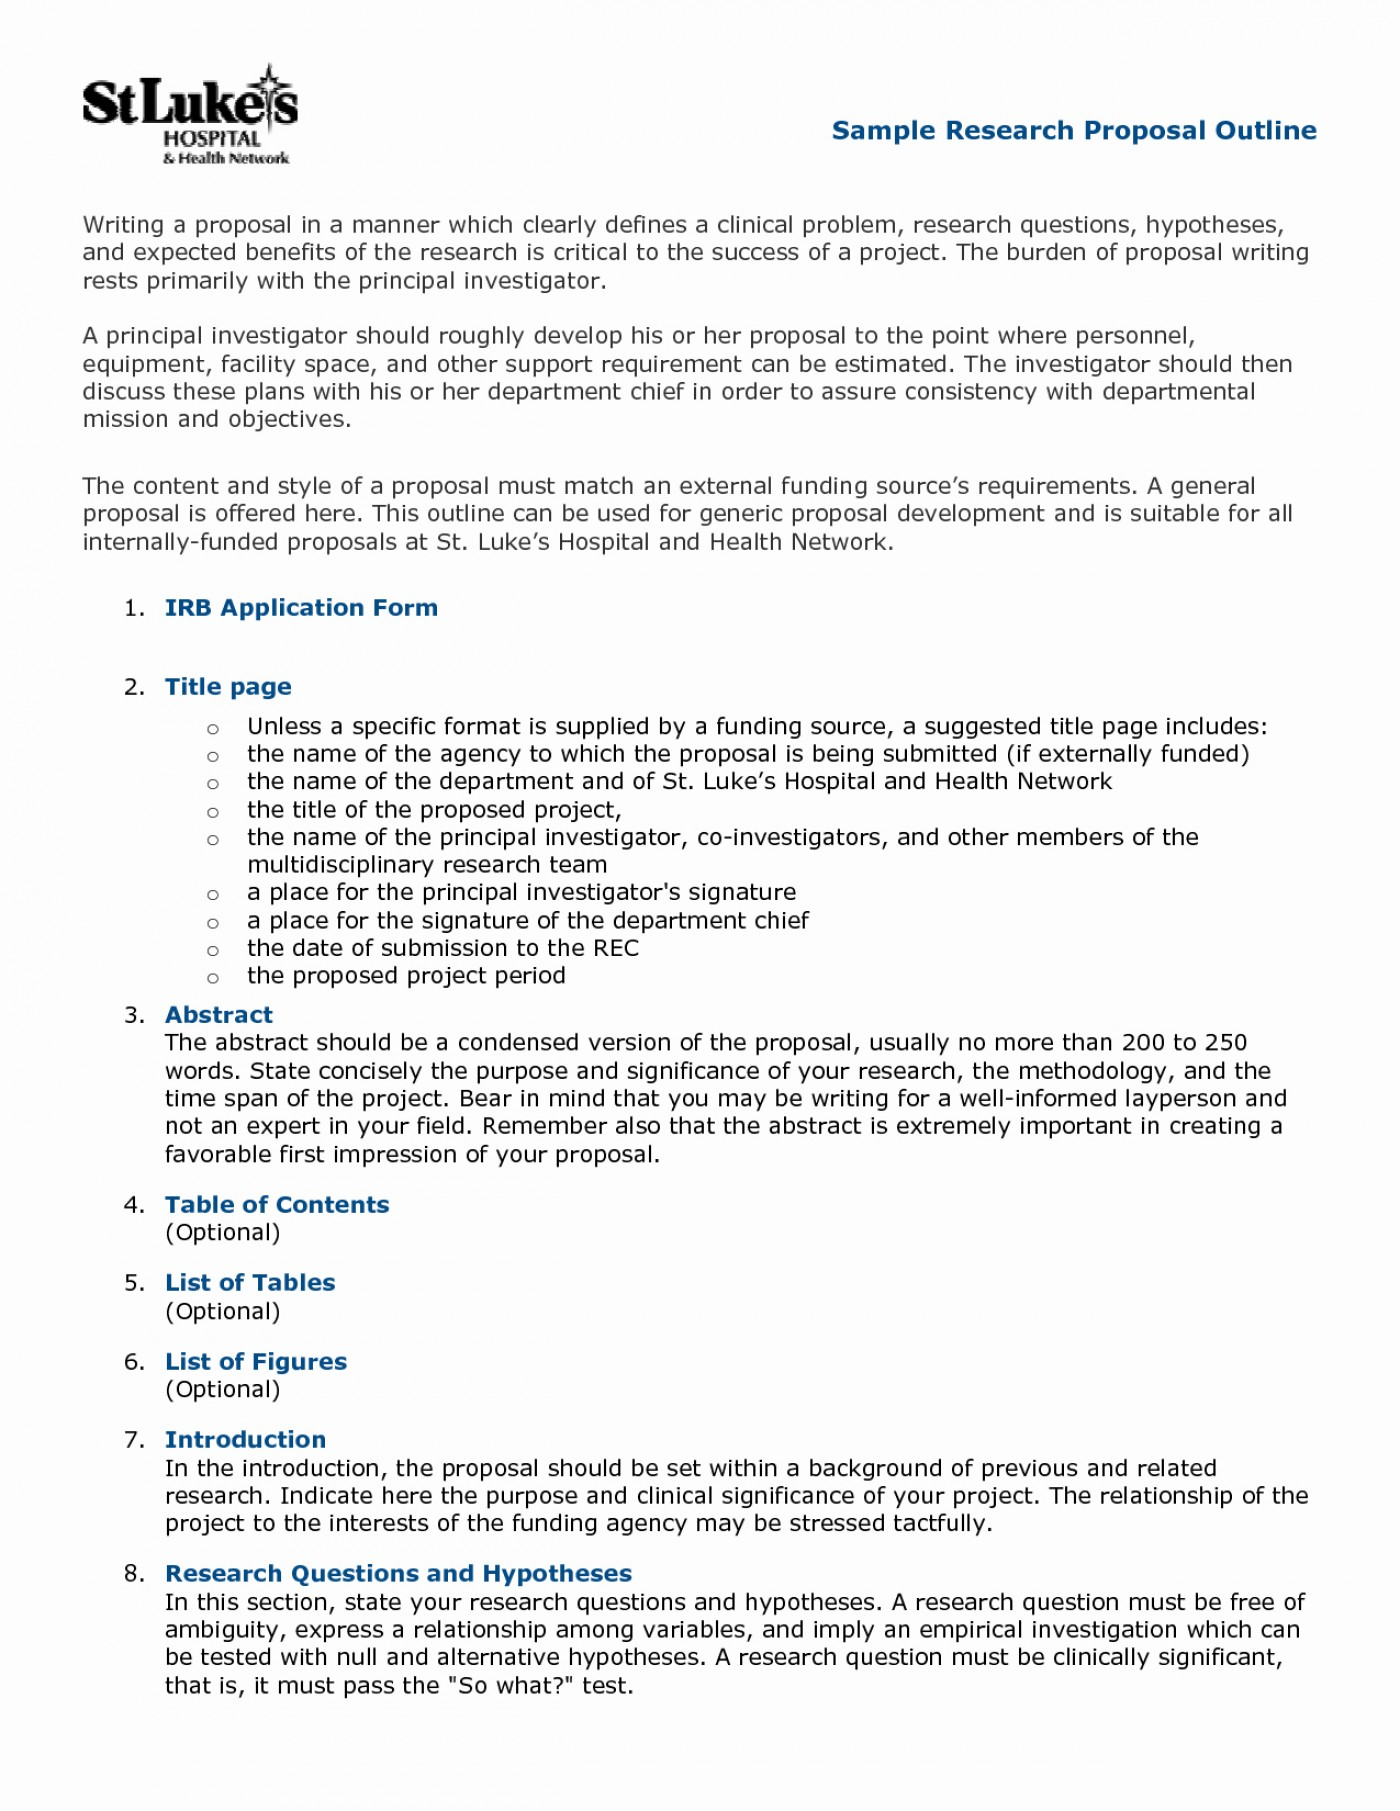 014 Quantitative Research Proposal Template And Best S Of Paper Samples Museumlegs